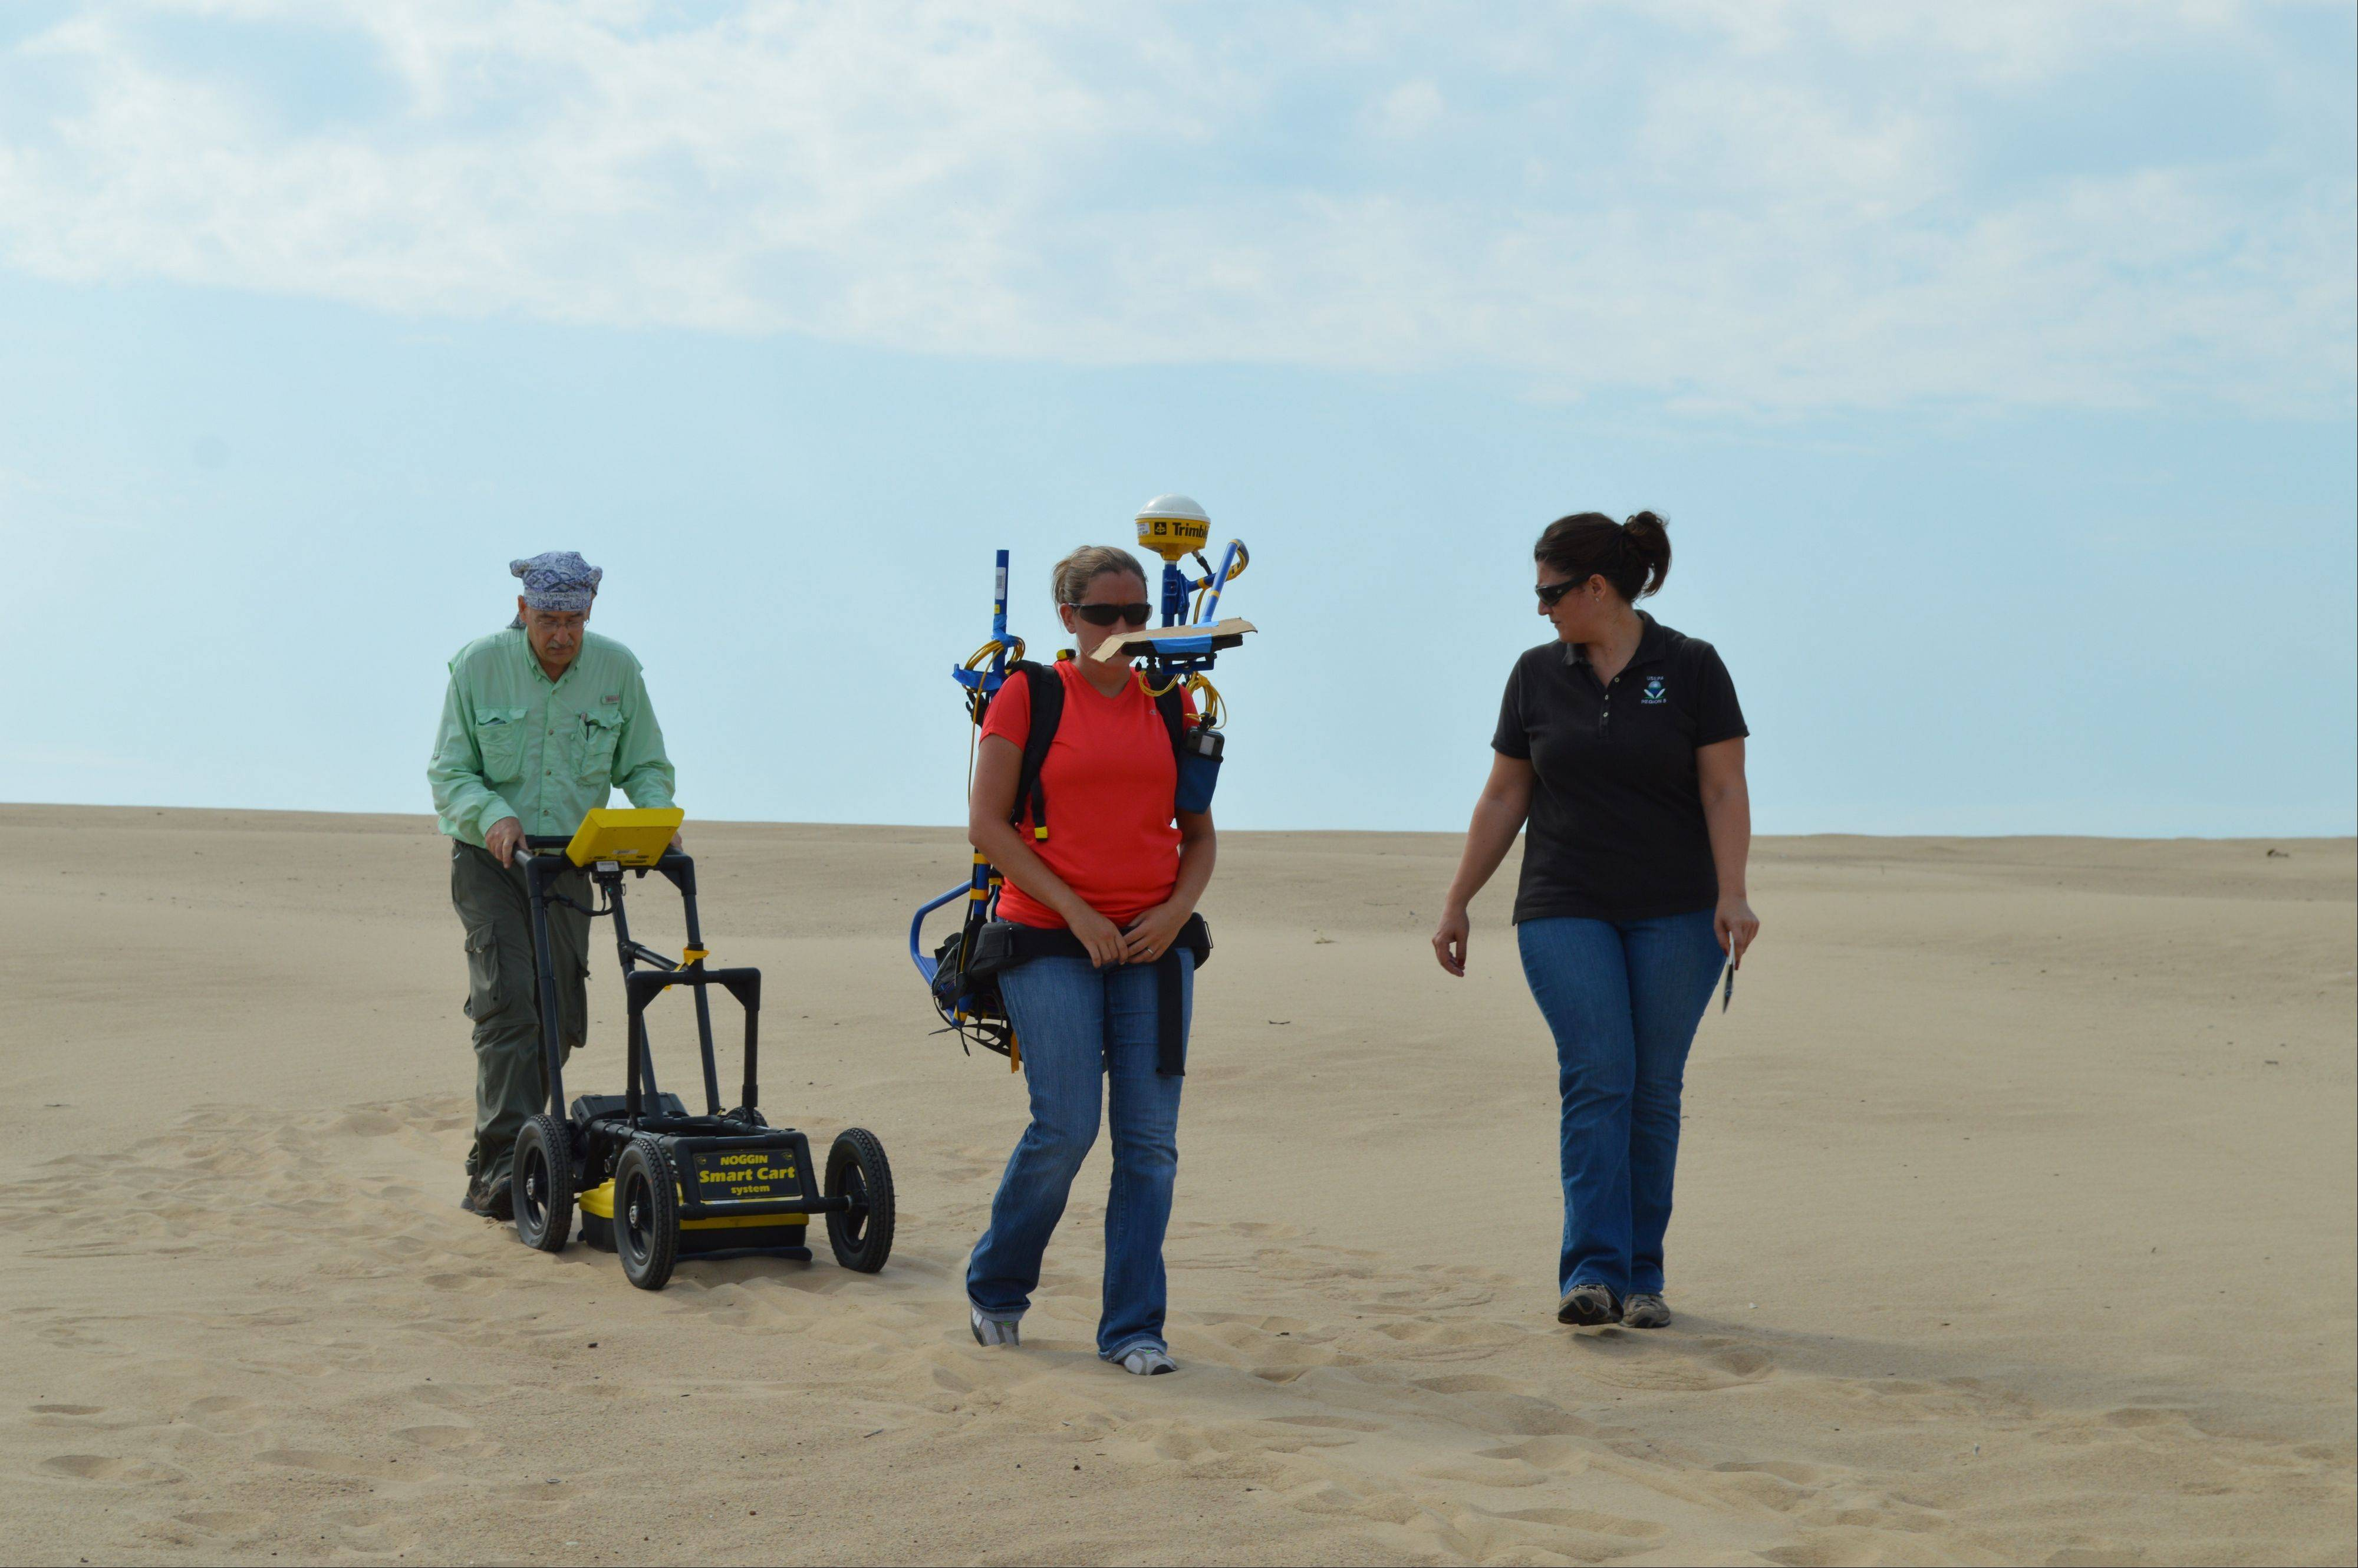 Environmental Protection Agency scientists use ground-penetrating radar equipment at Mount Baldy at the Indiana Dunes National Lakeshore. A hole similar to the one that trapped a 6-year-old boy under 11 feet of sand has been found on the same northern Indiana dune.